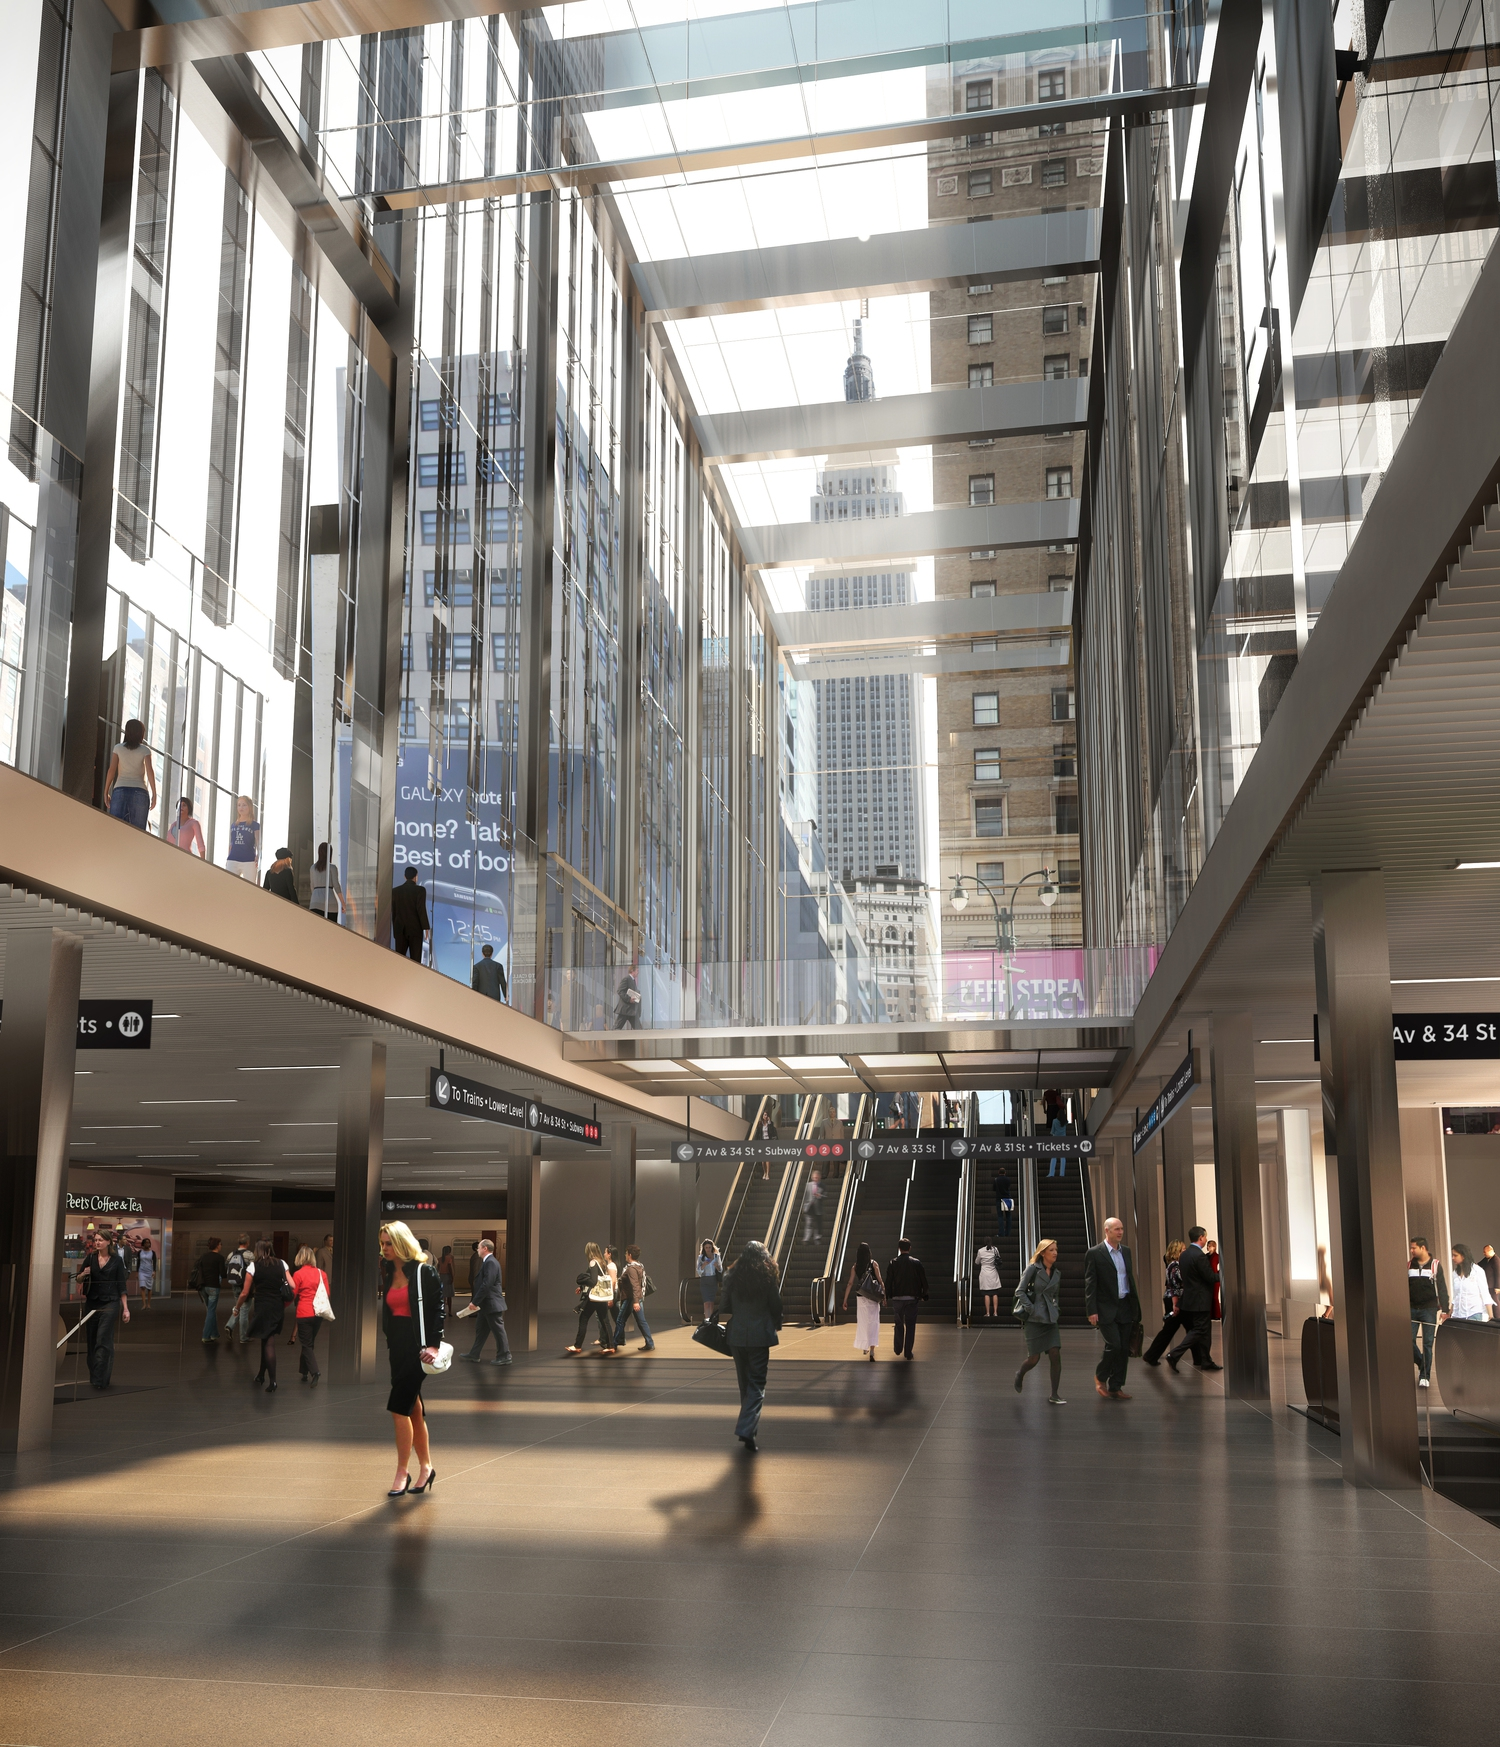 New LIRR 33rd Street Concourse Rendering | Rendering of new LIRR 33rd Street Concourse at Penn Station.